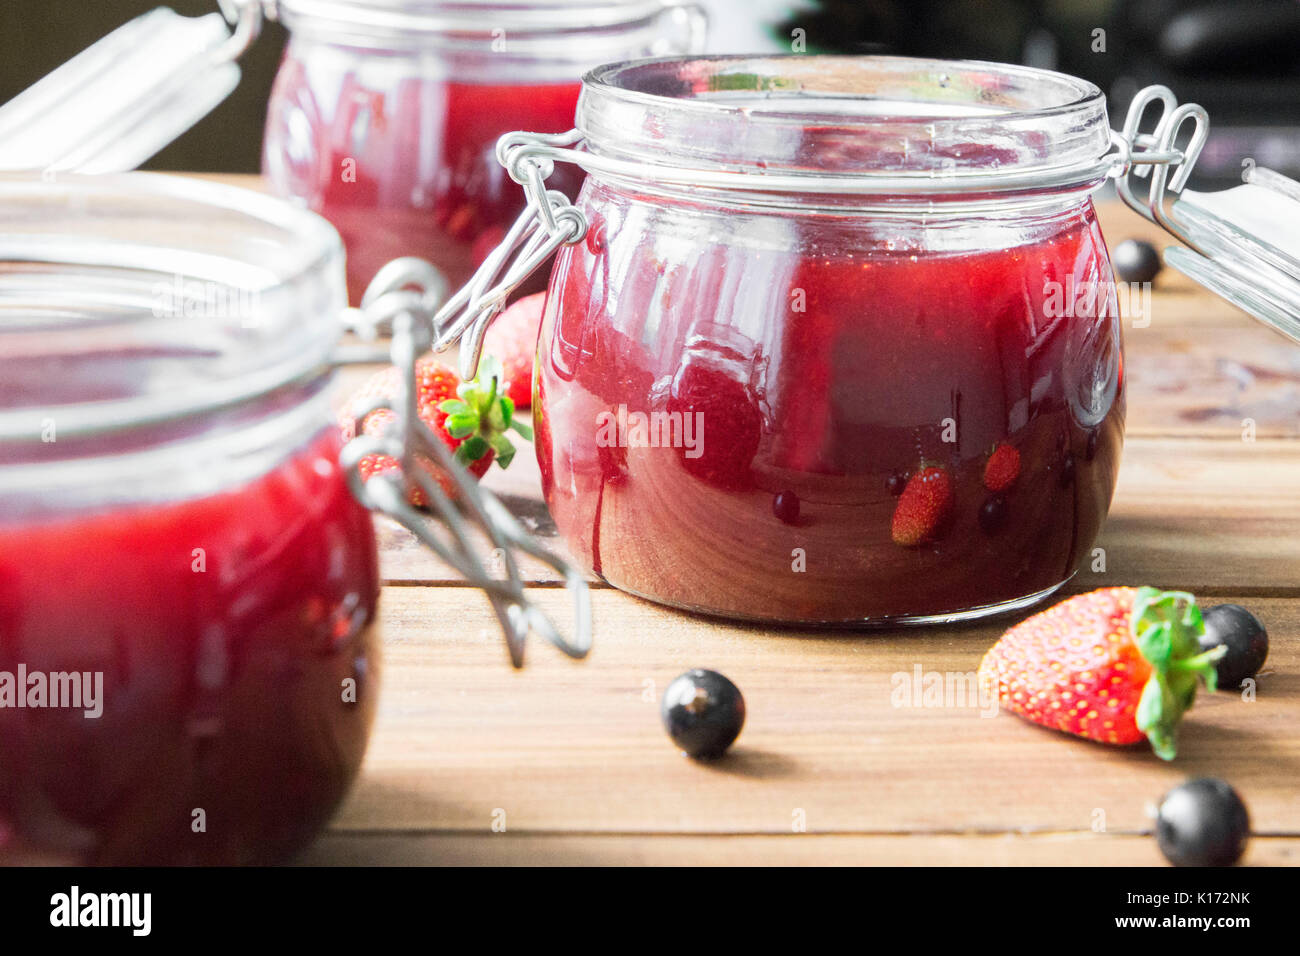 Homemade jam with berries on the wooden table - Stock Image